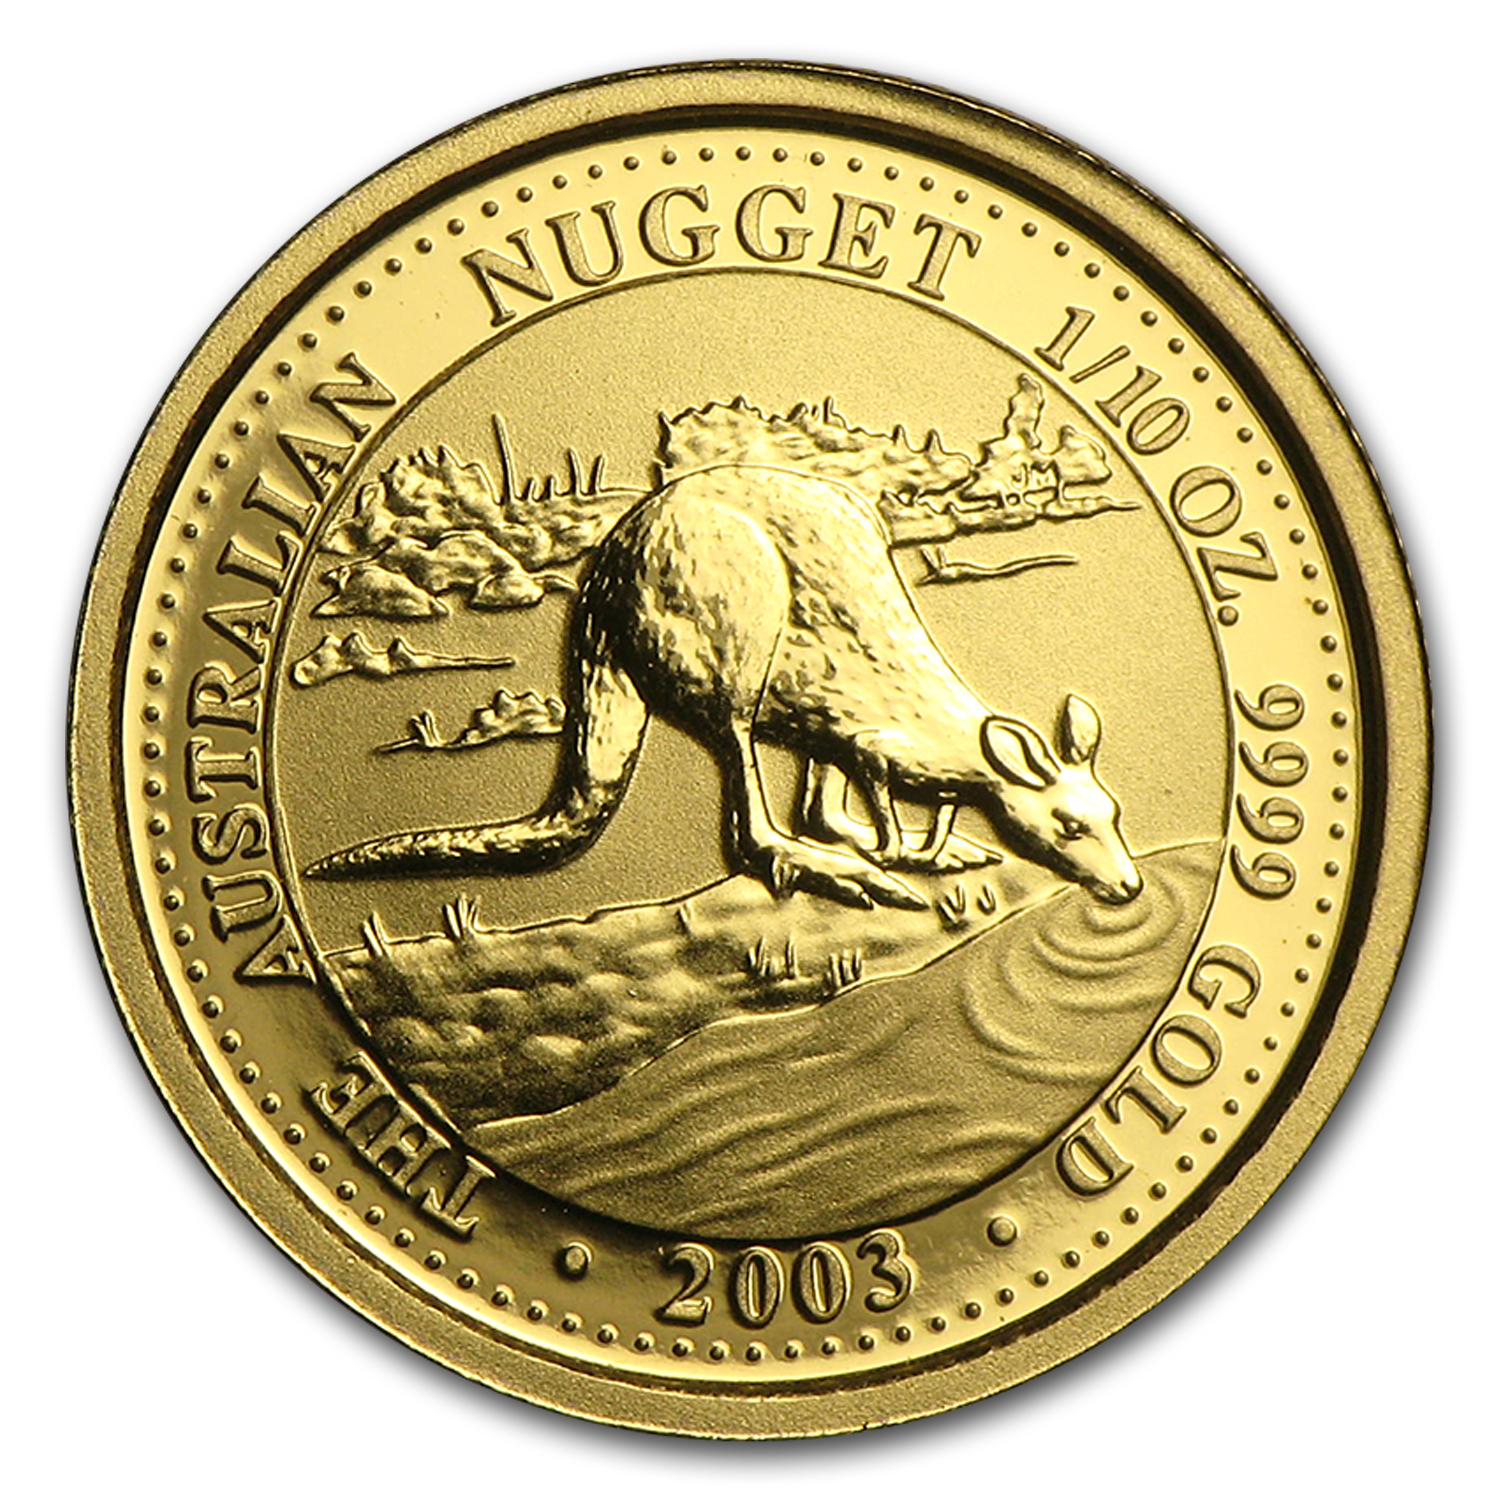 2003 Australia 1/10 oz Gold Nugget